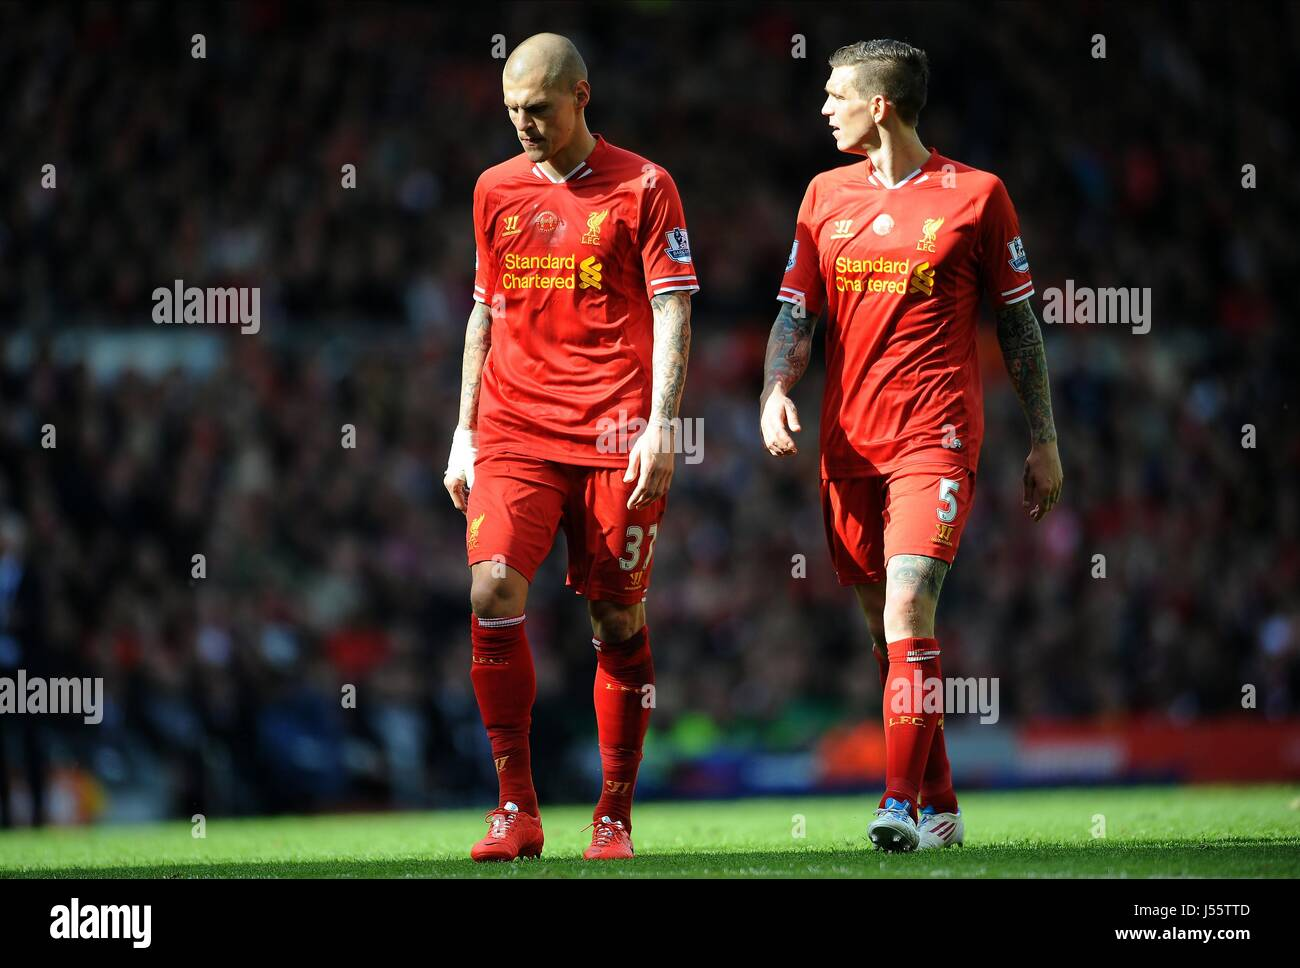 agger and skrtel